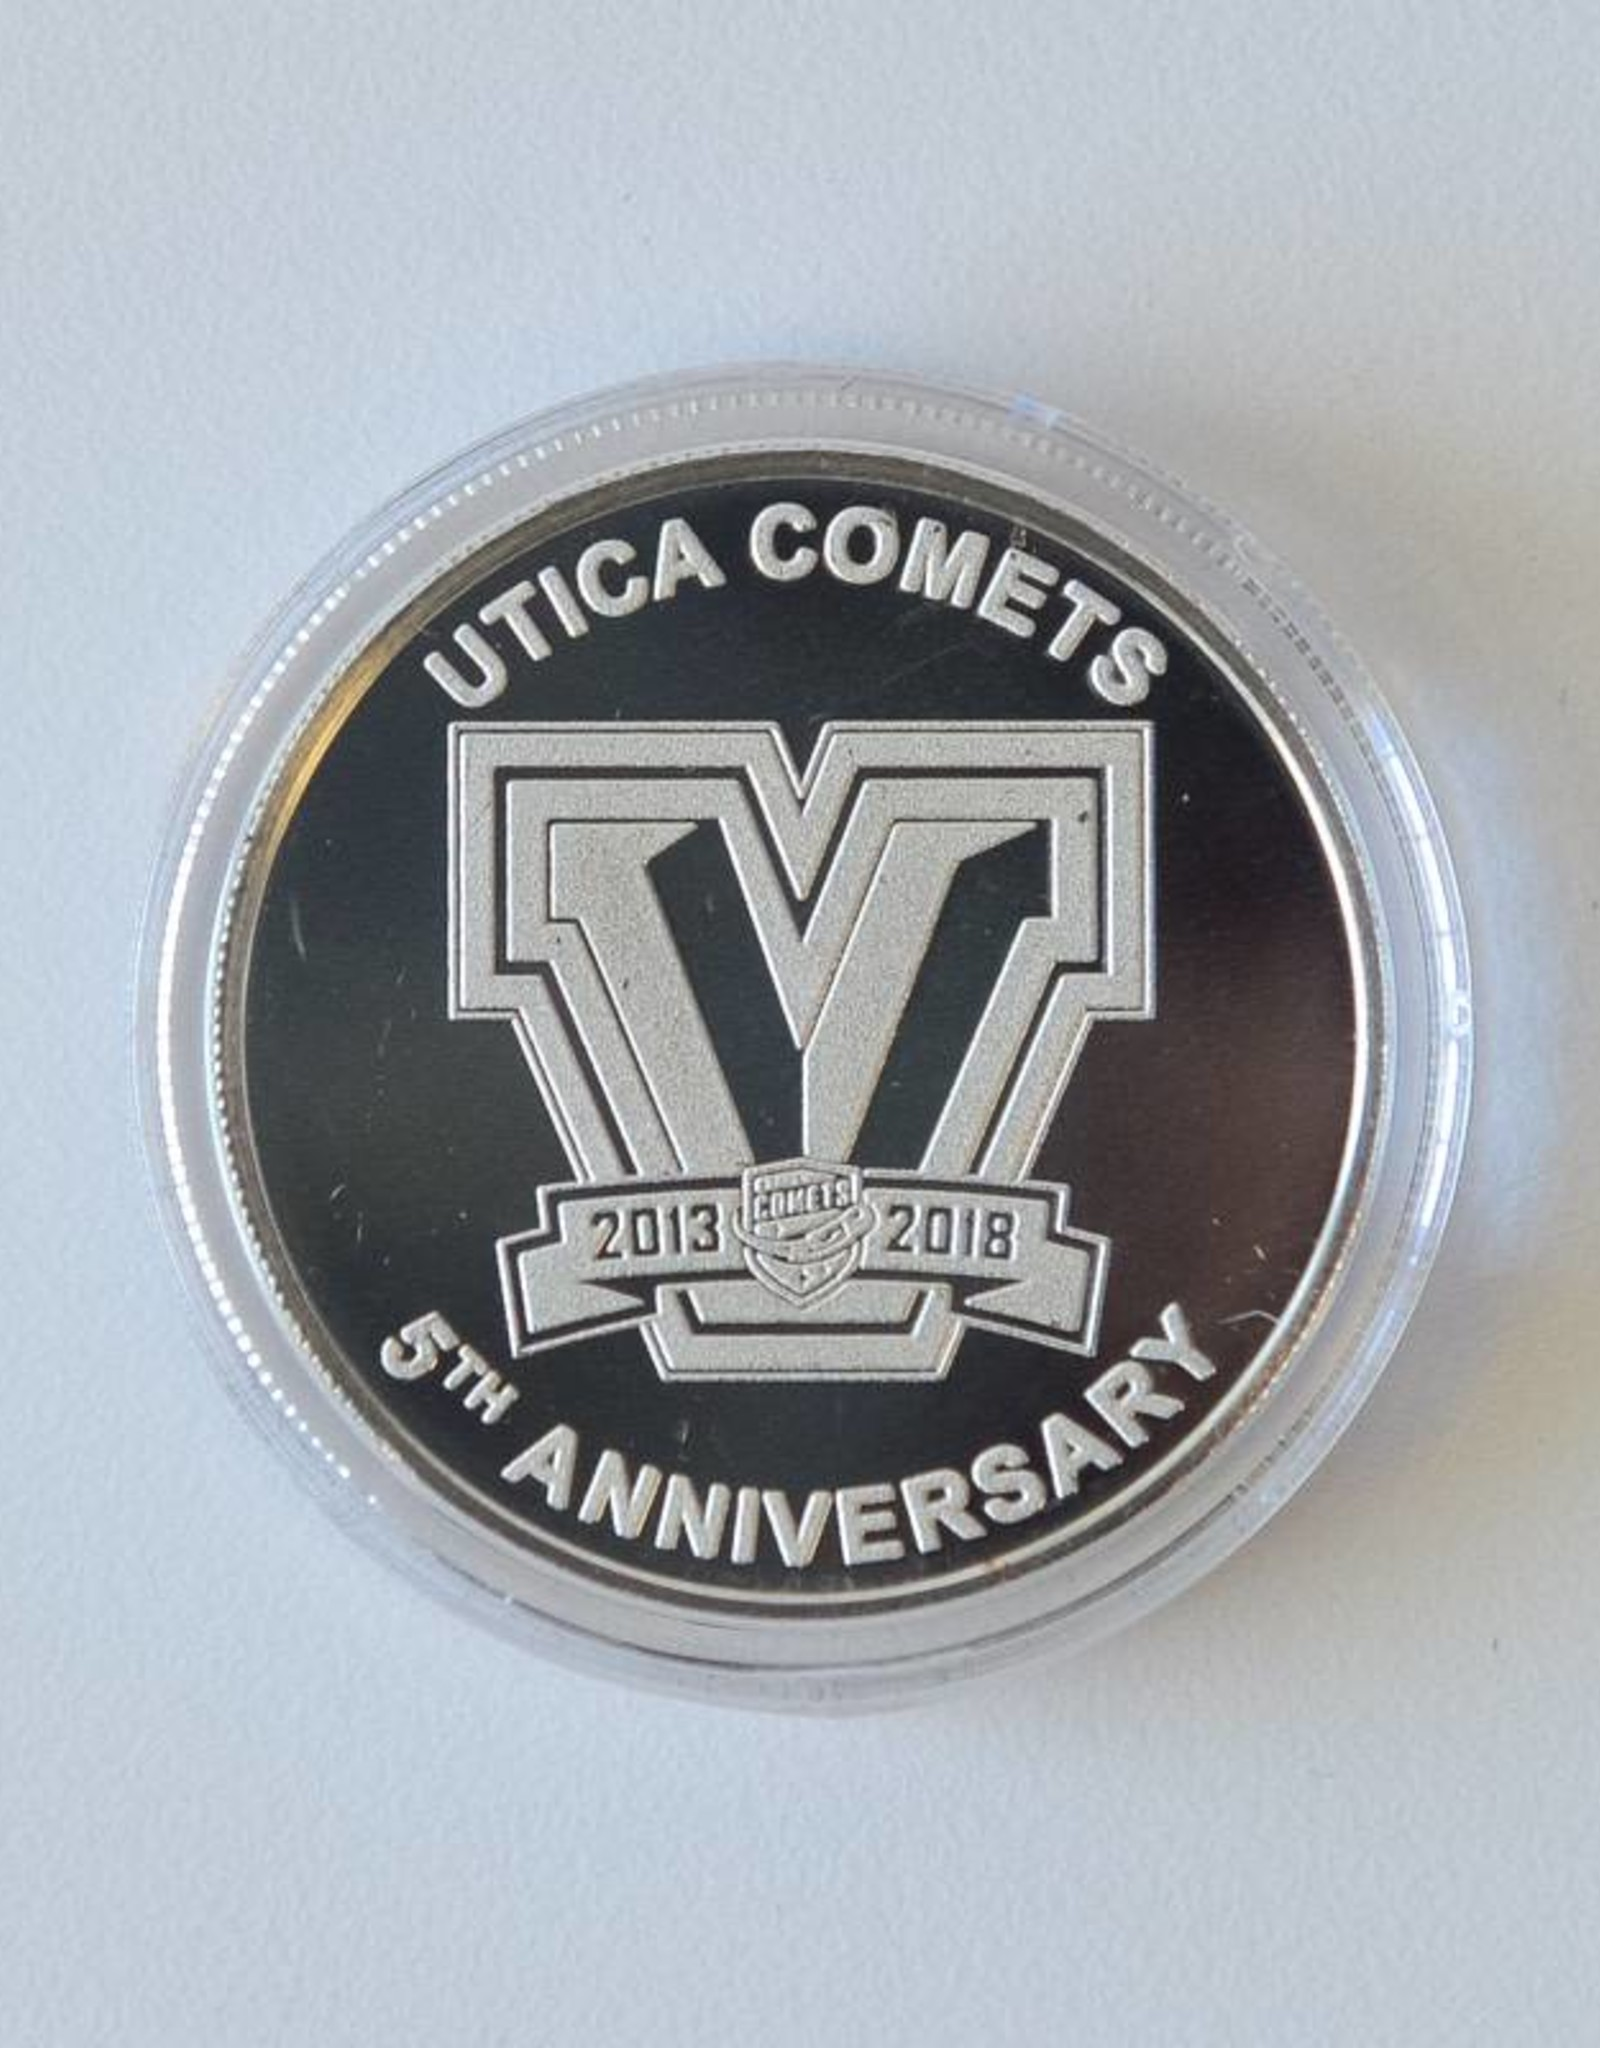 The Highland Mint 5th Anniversary Collector Coin